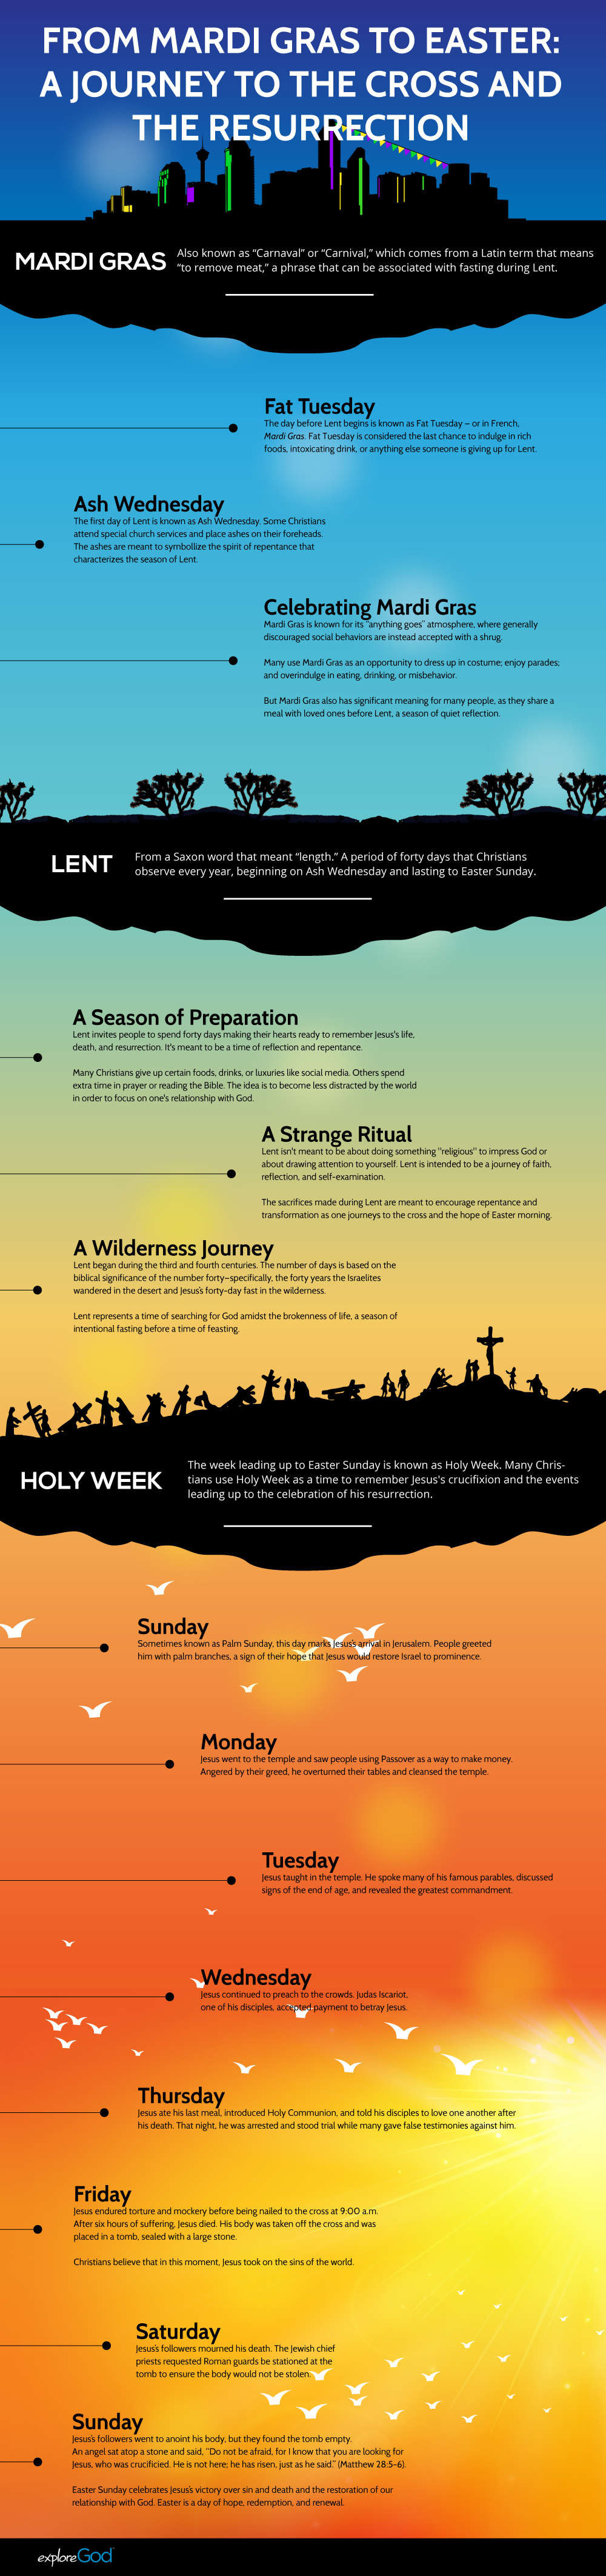 From Mardi Gras to Easter: A Journey to the Cross and the Resurrection